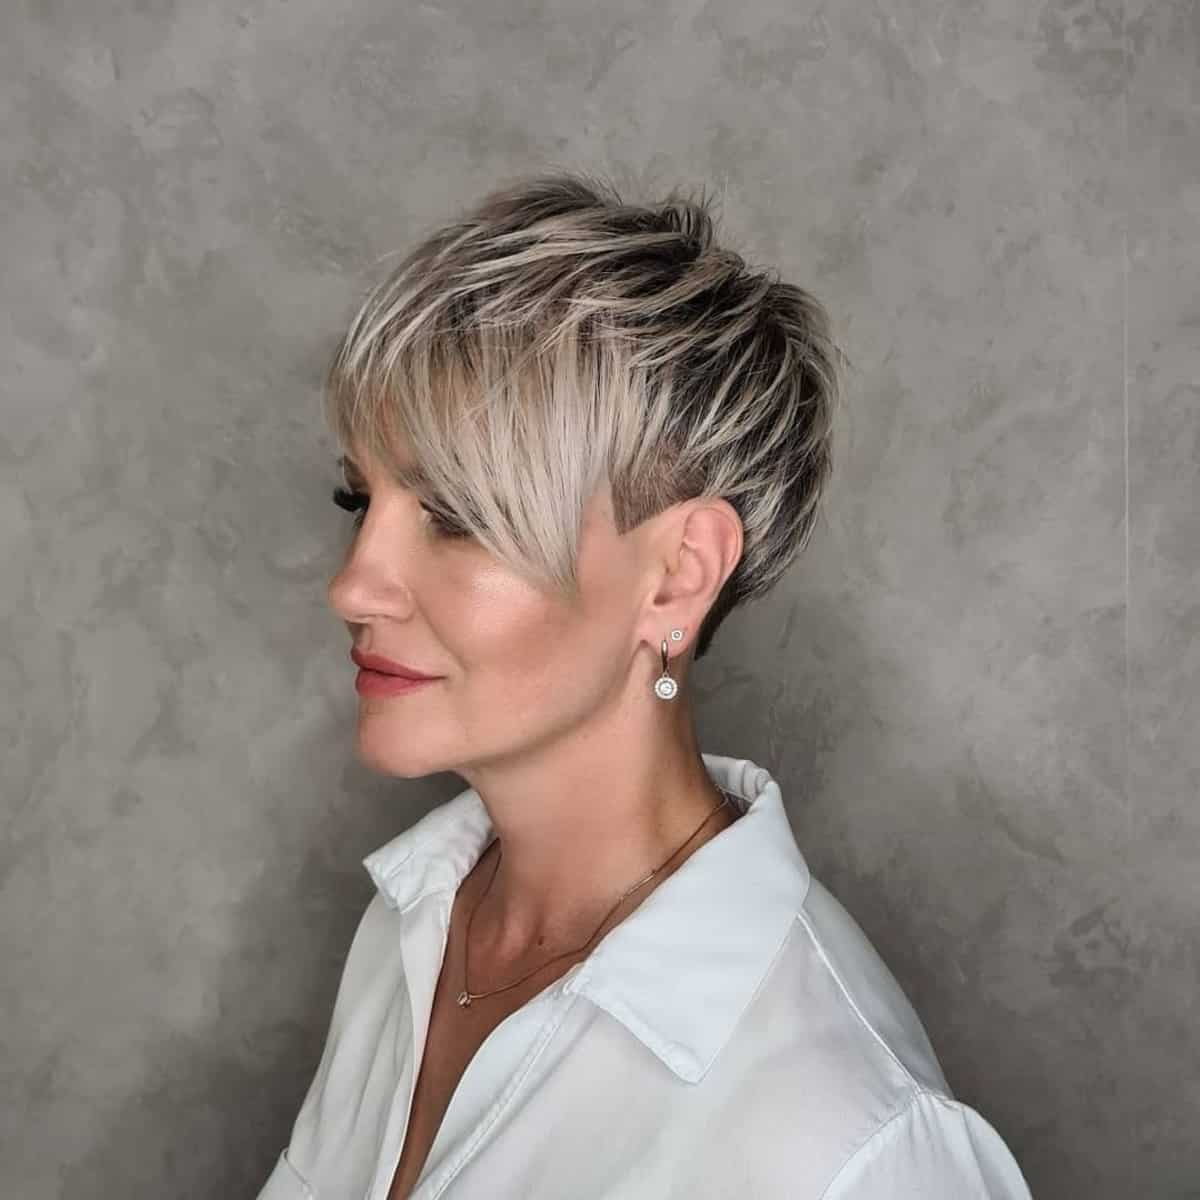 Very short textured pixie for women over 30